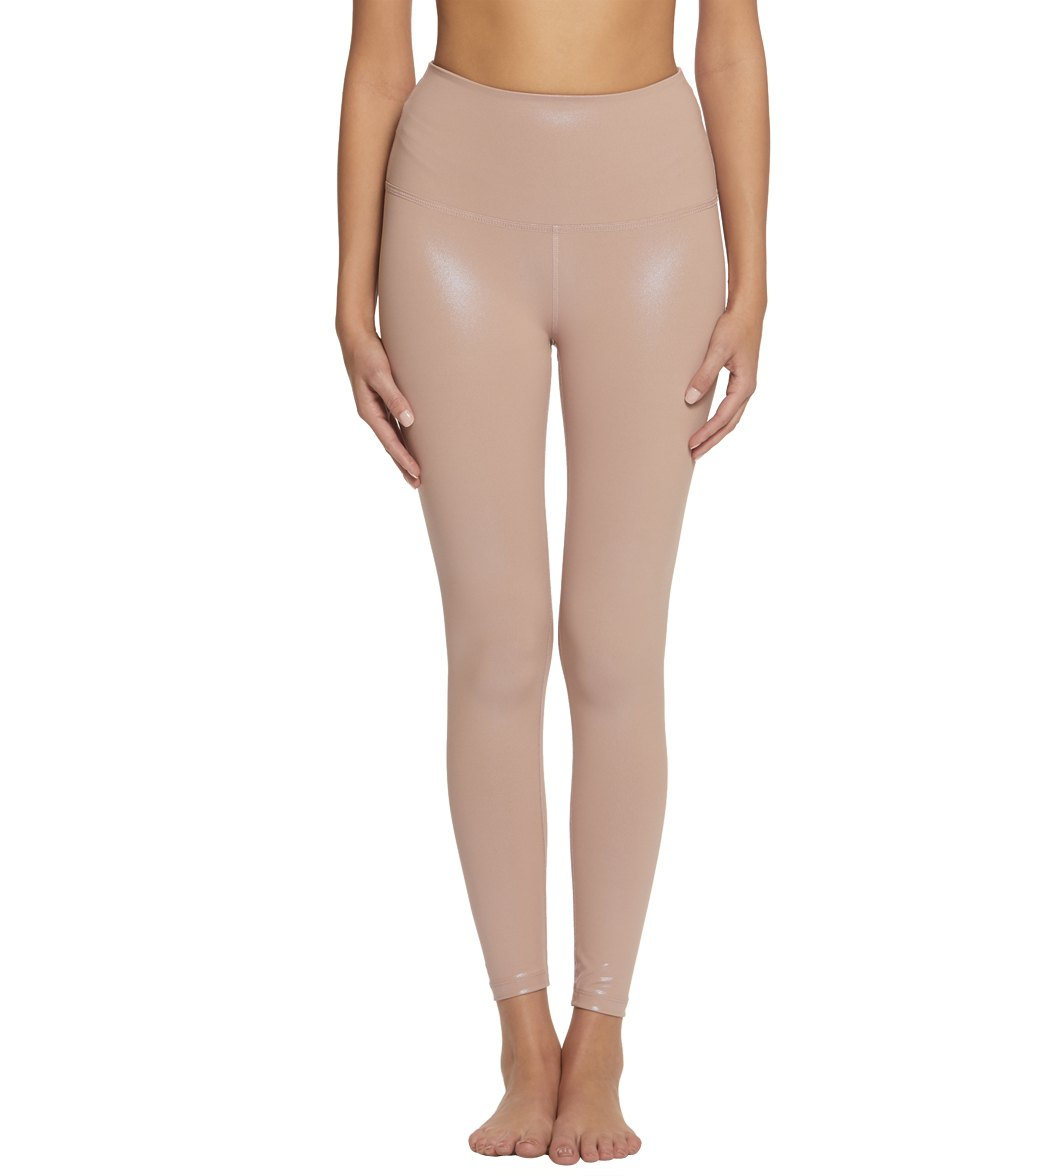 93ca5bc900dc8 Beyond Yoga Pearlized High Waisted 7/8 Yoga Leggings at YogaOutlet.com -  Free Shipping